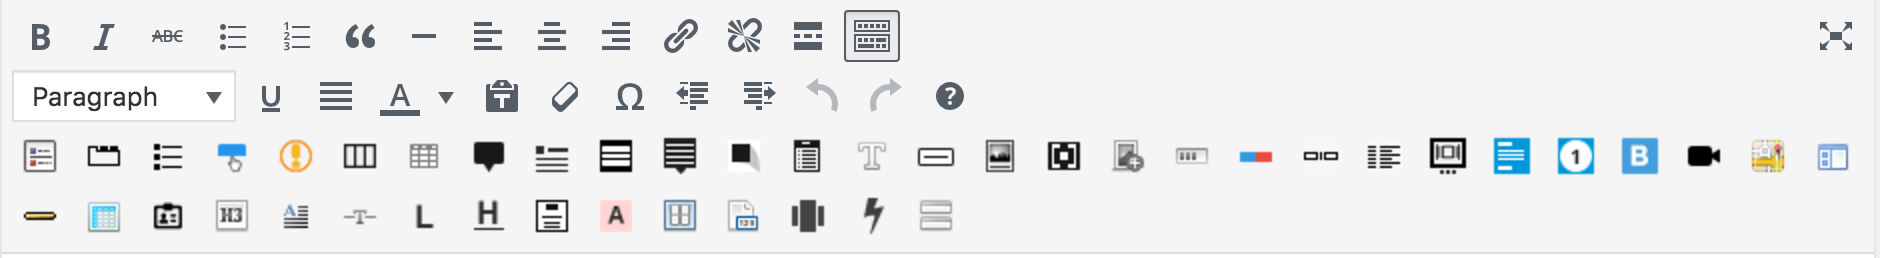 Bad-UX-WP-Editor-Icons